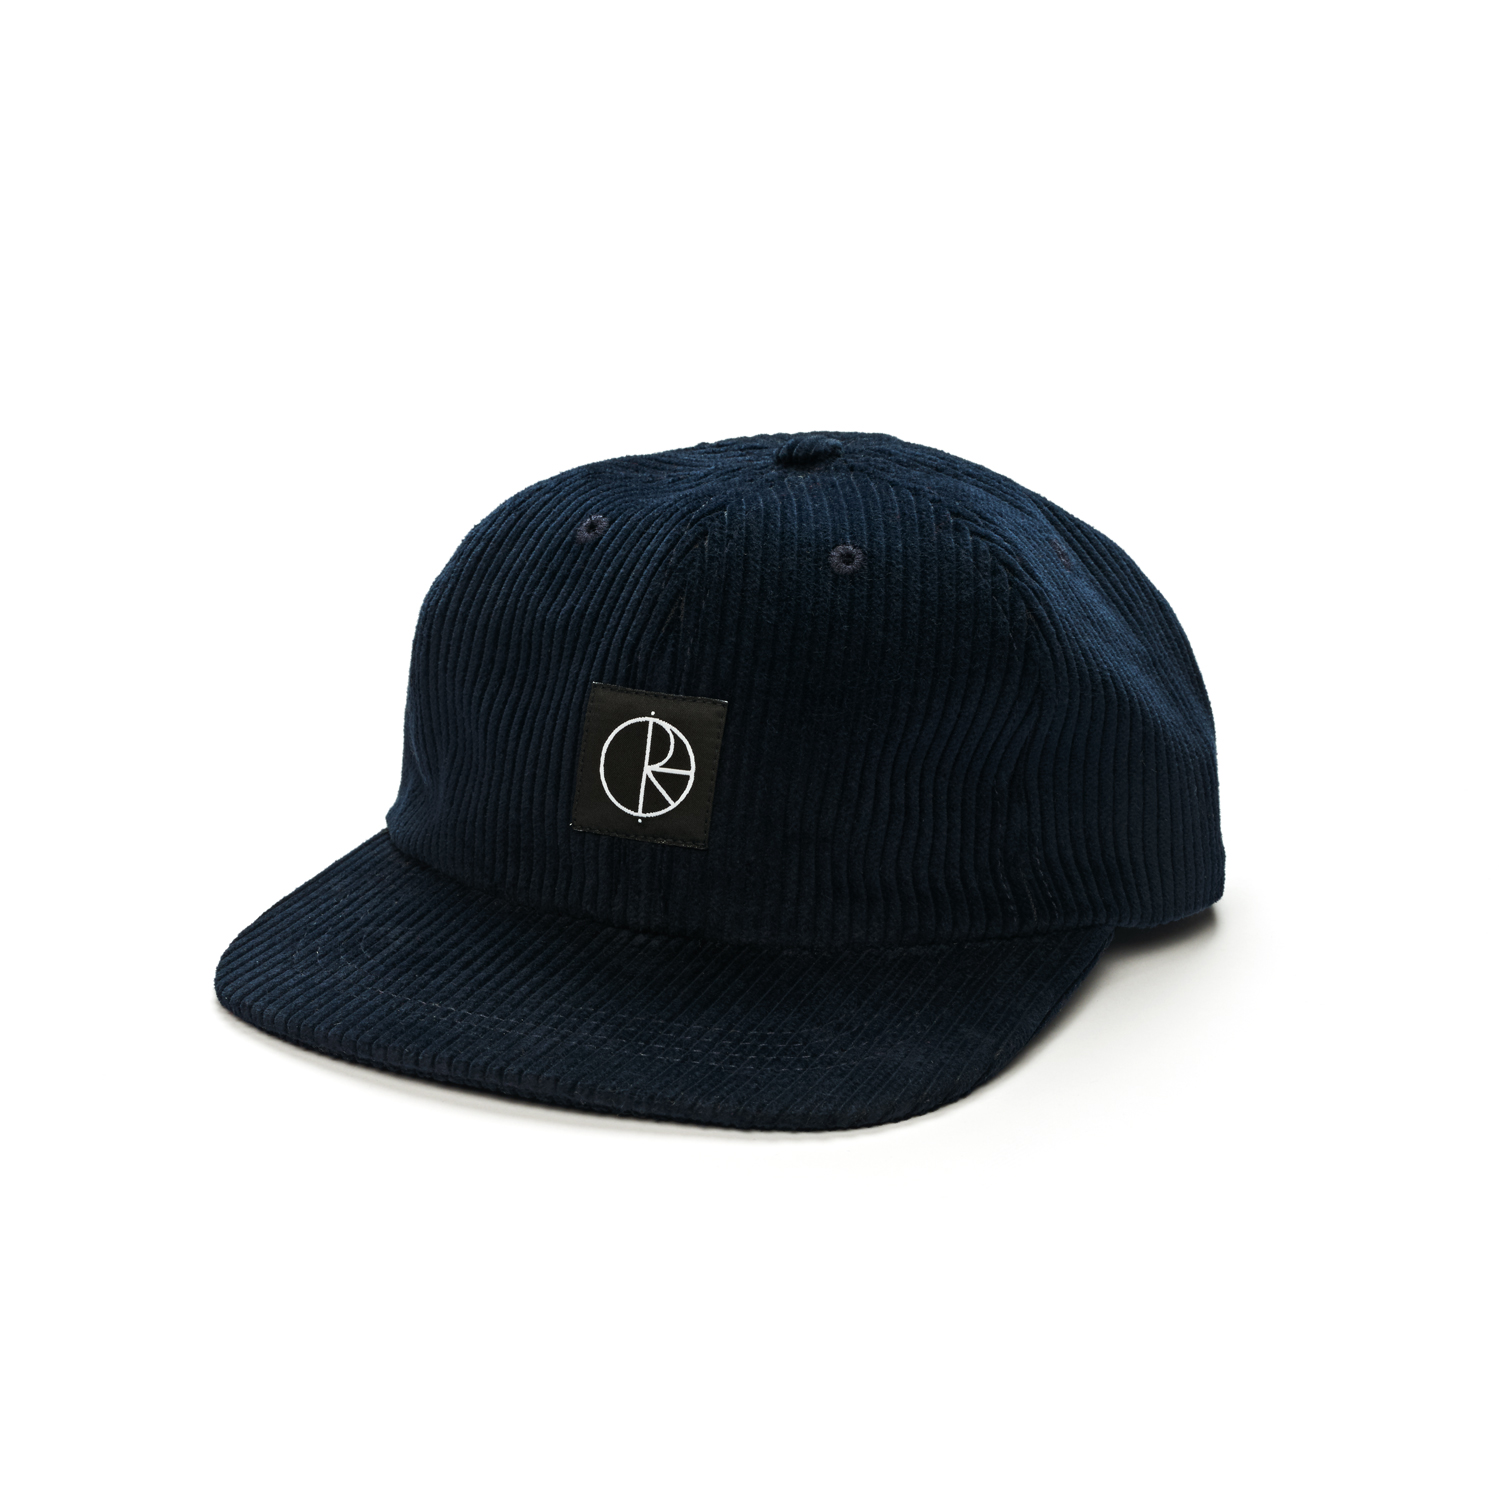 2da6f0a21b3 Polar Corduroy Cap Navy - Forty Two Skateboard Shop